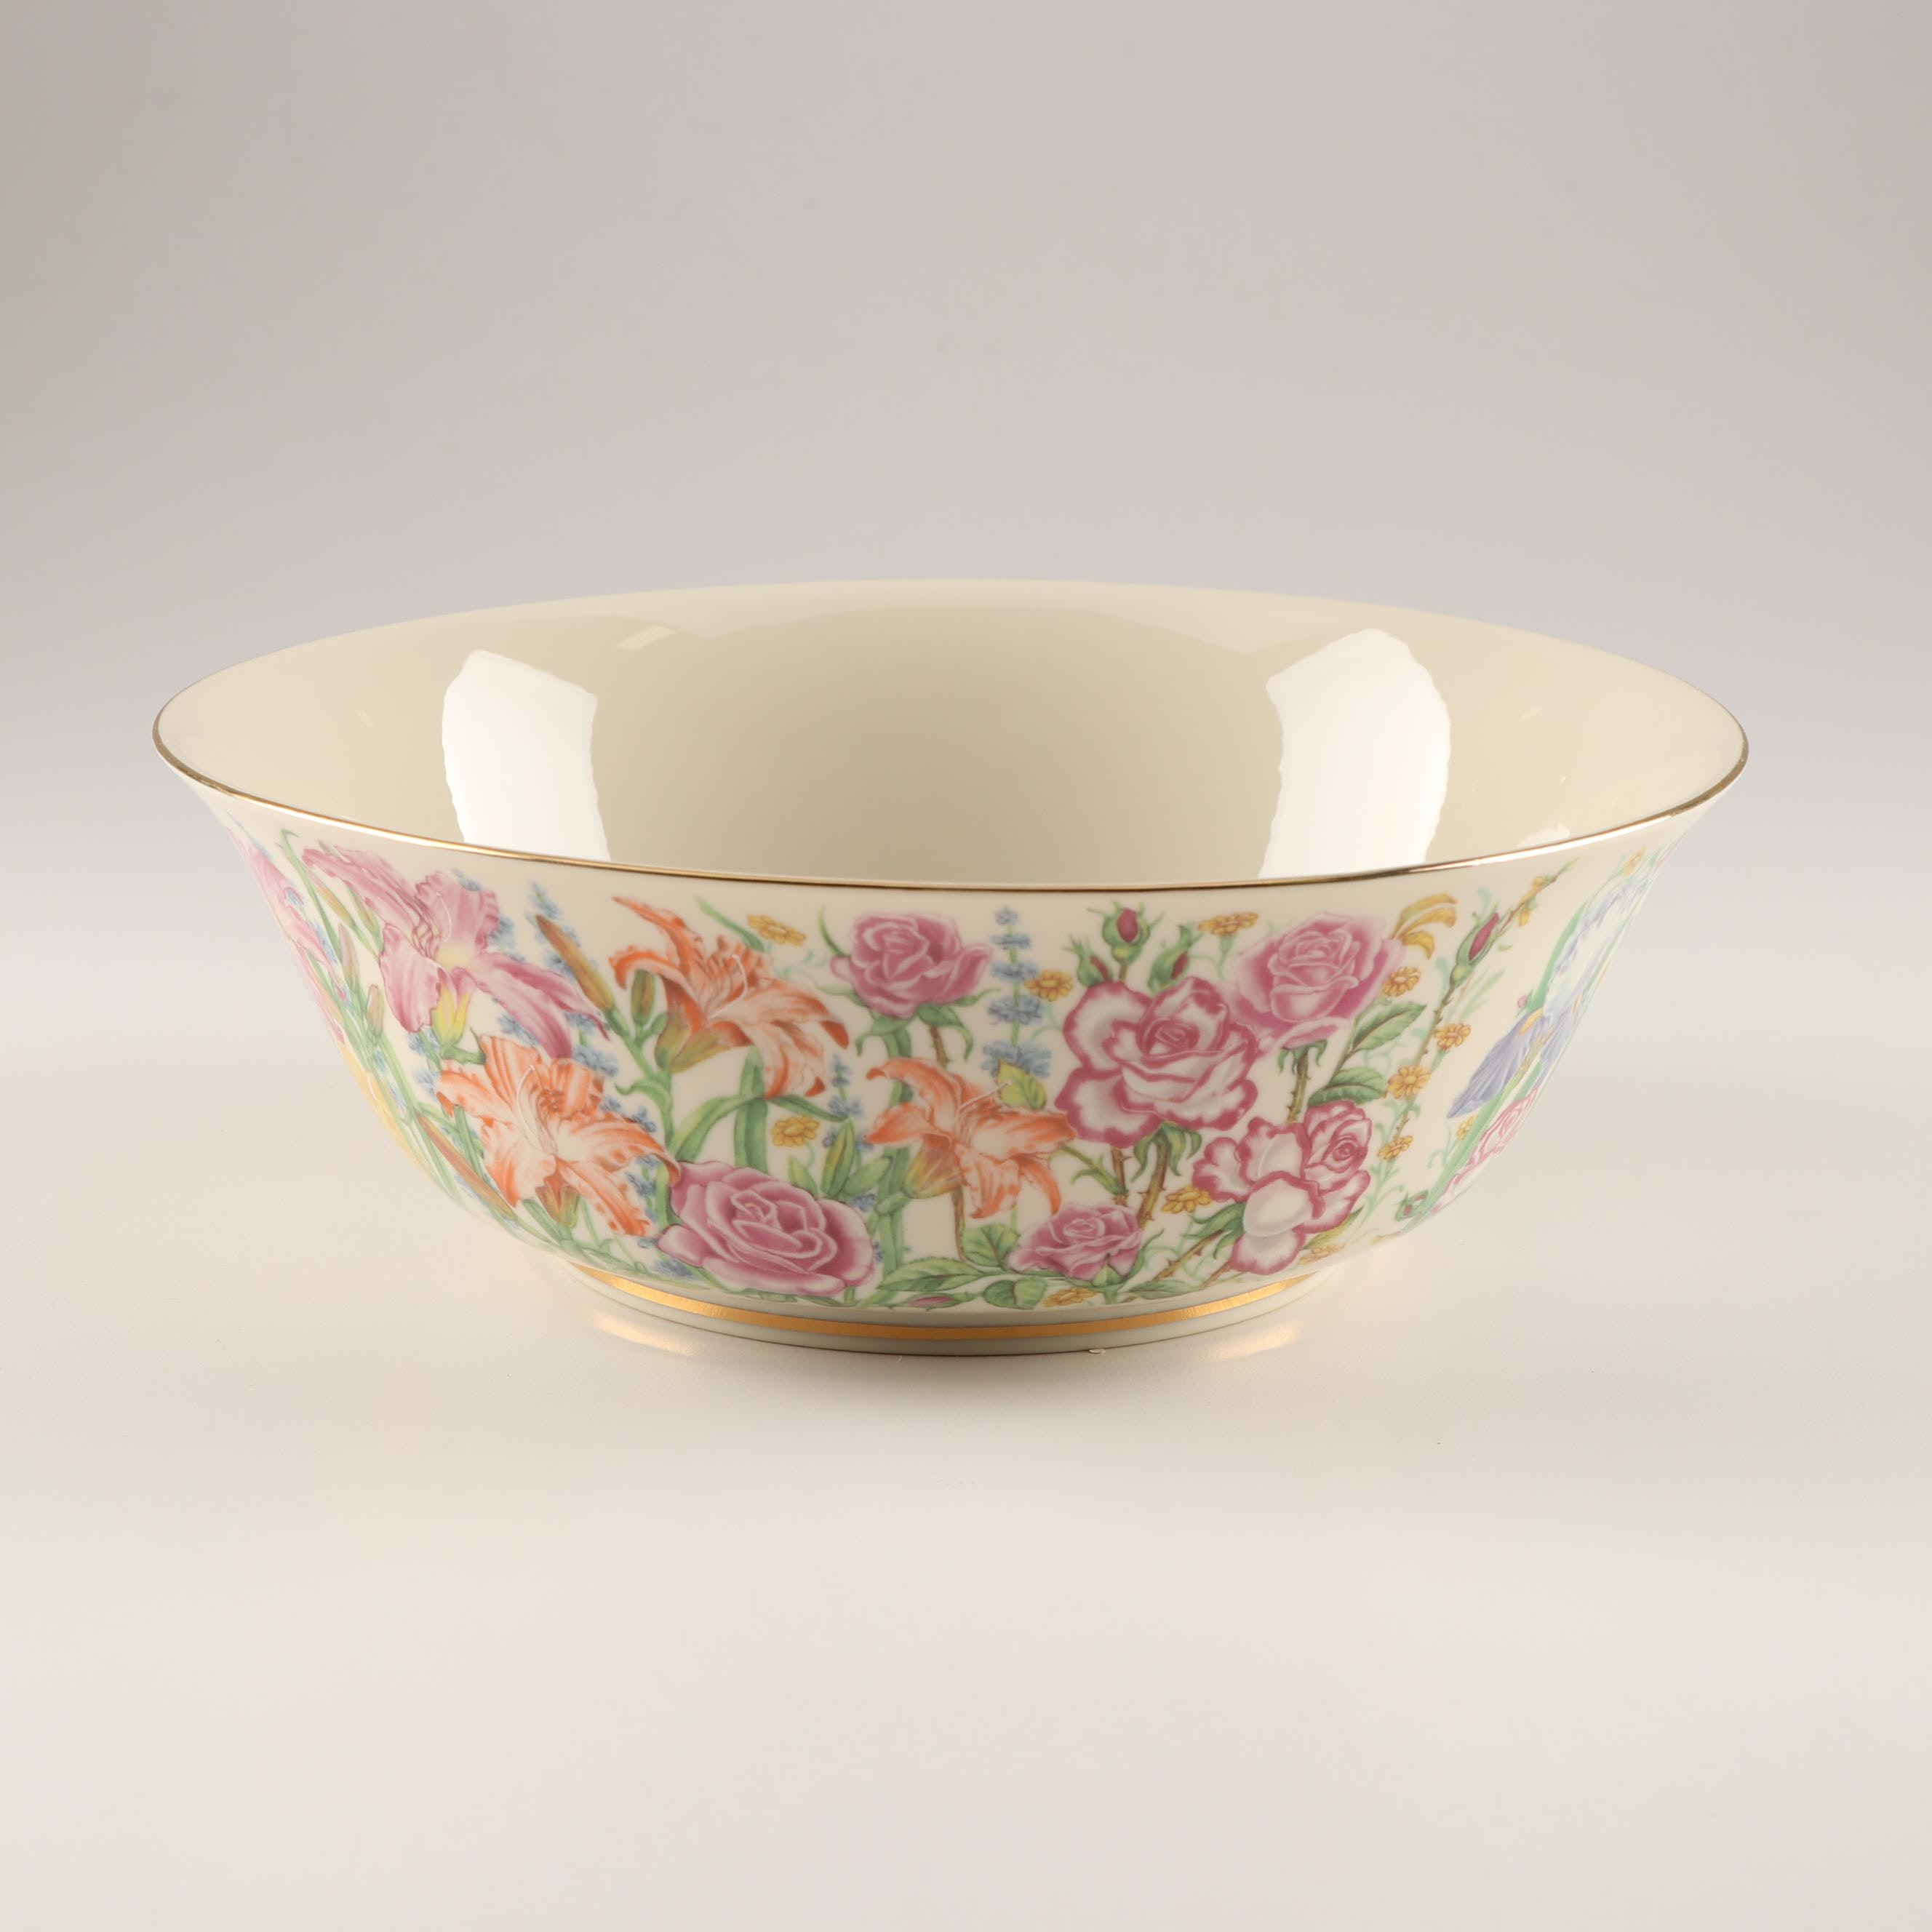 """Lenox """"The Flower Blossom Bowl"""" by Suzanne Clee"""